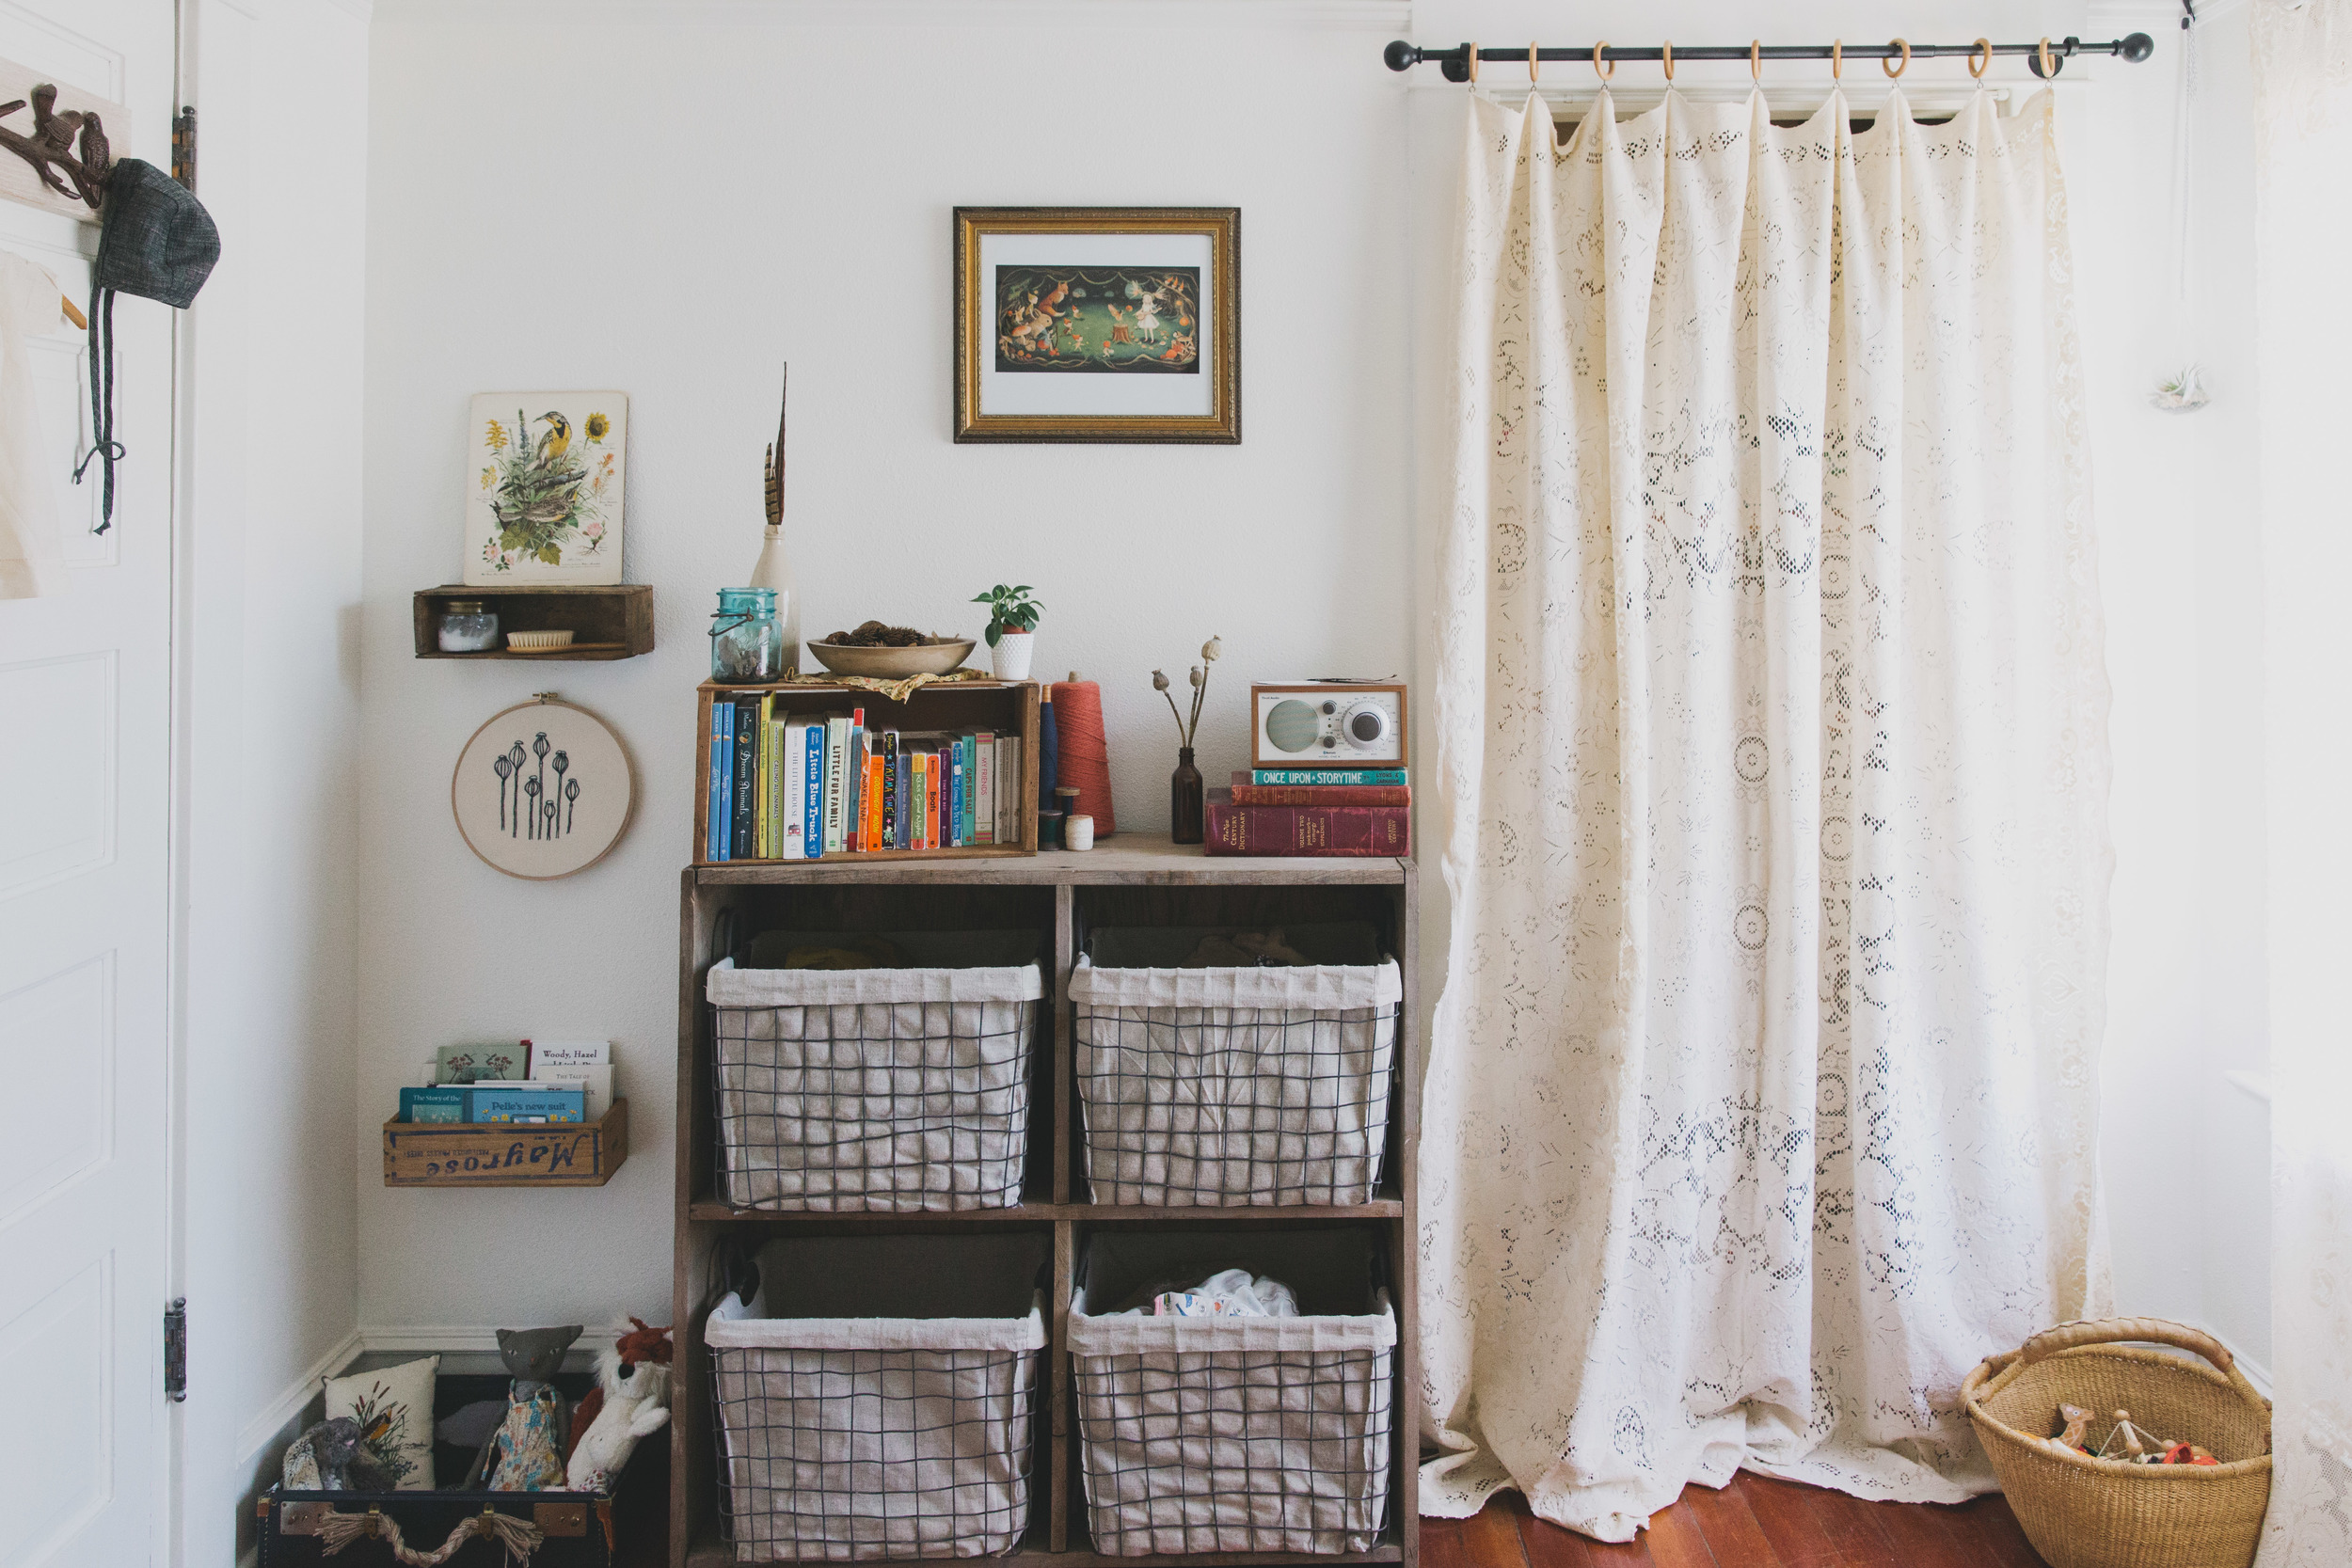 clothes, diaper supplies, & extra blankets are stored in the bins. i sewed wooden curtain rings to vintage lace tablecloths to make the closet and window curtains.